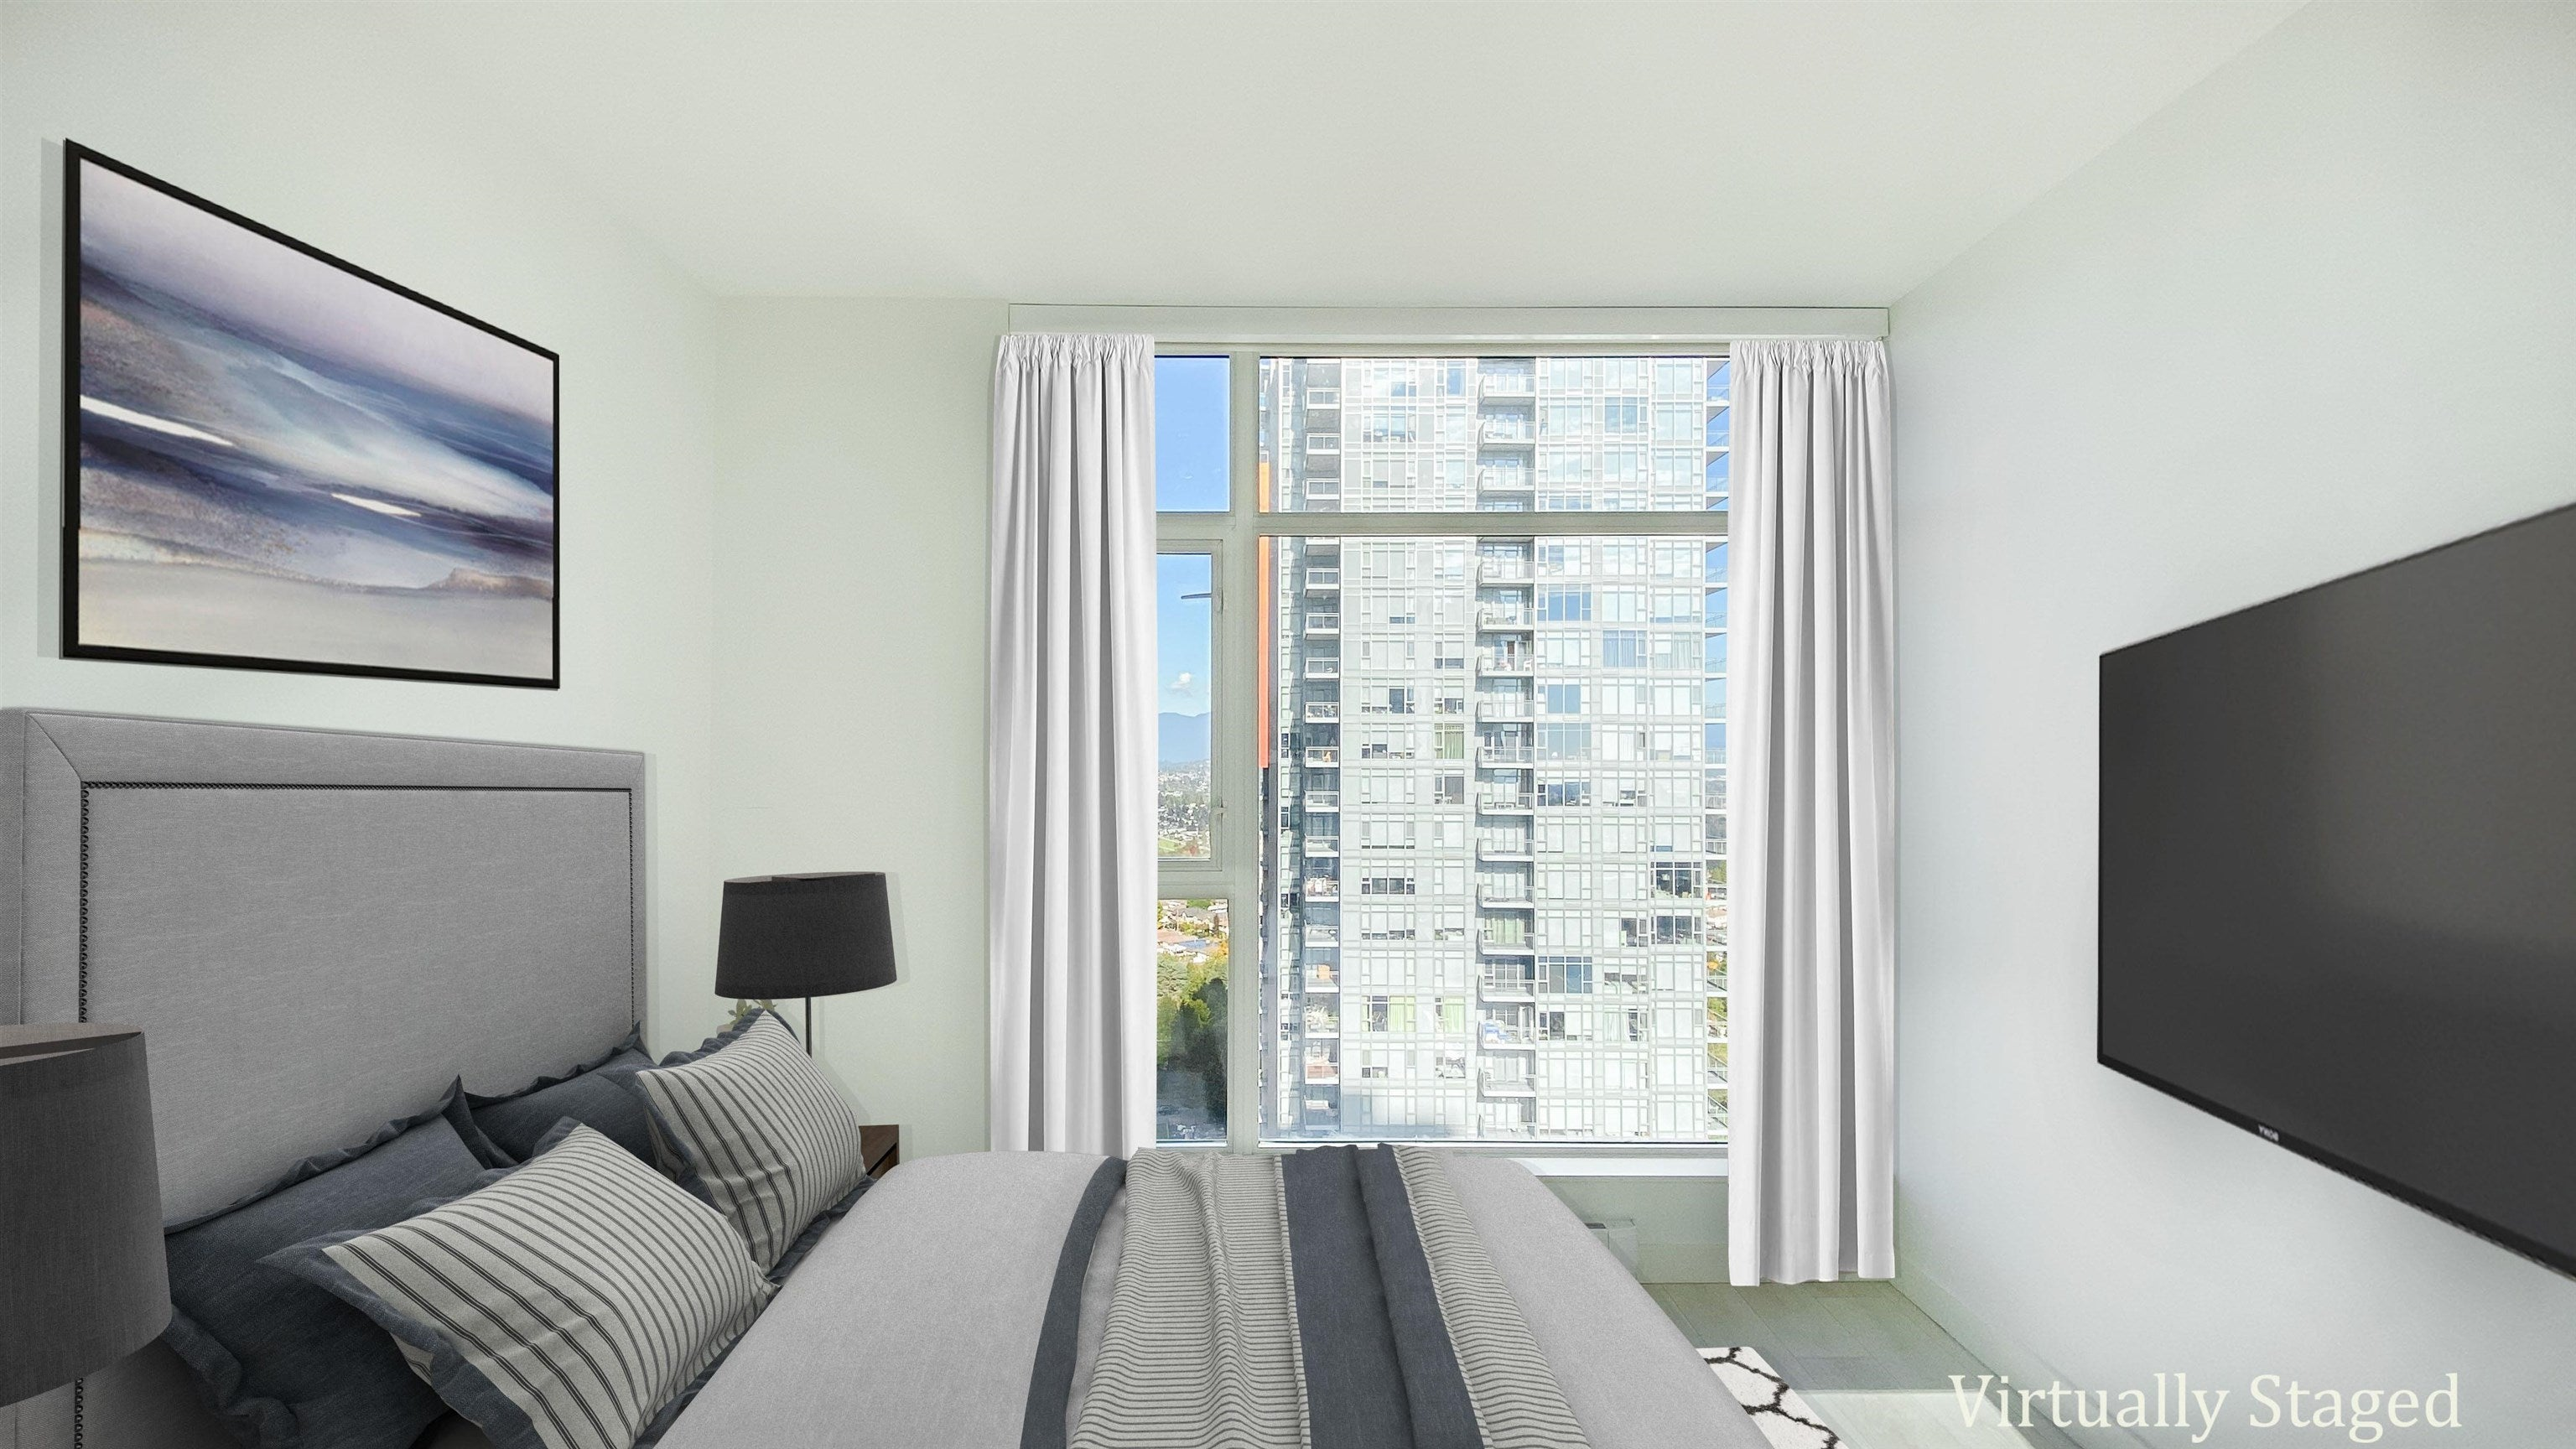 2510 4670 ASSEMBLY WAY - Metrotown Apartment/Condo for sale, 2 Bedrooms (R2625732) - #20